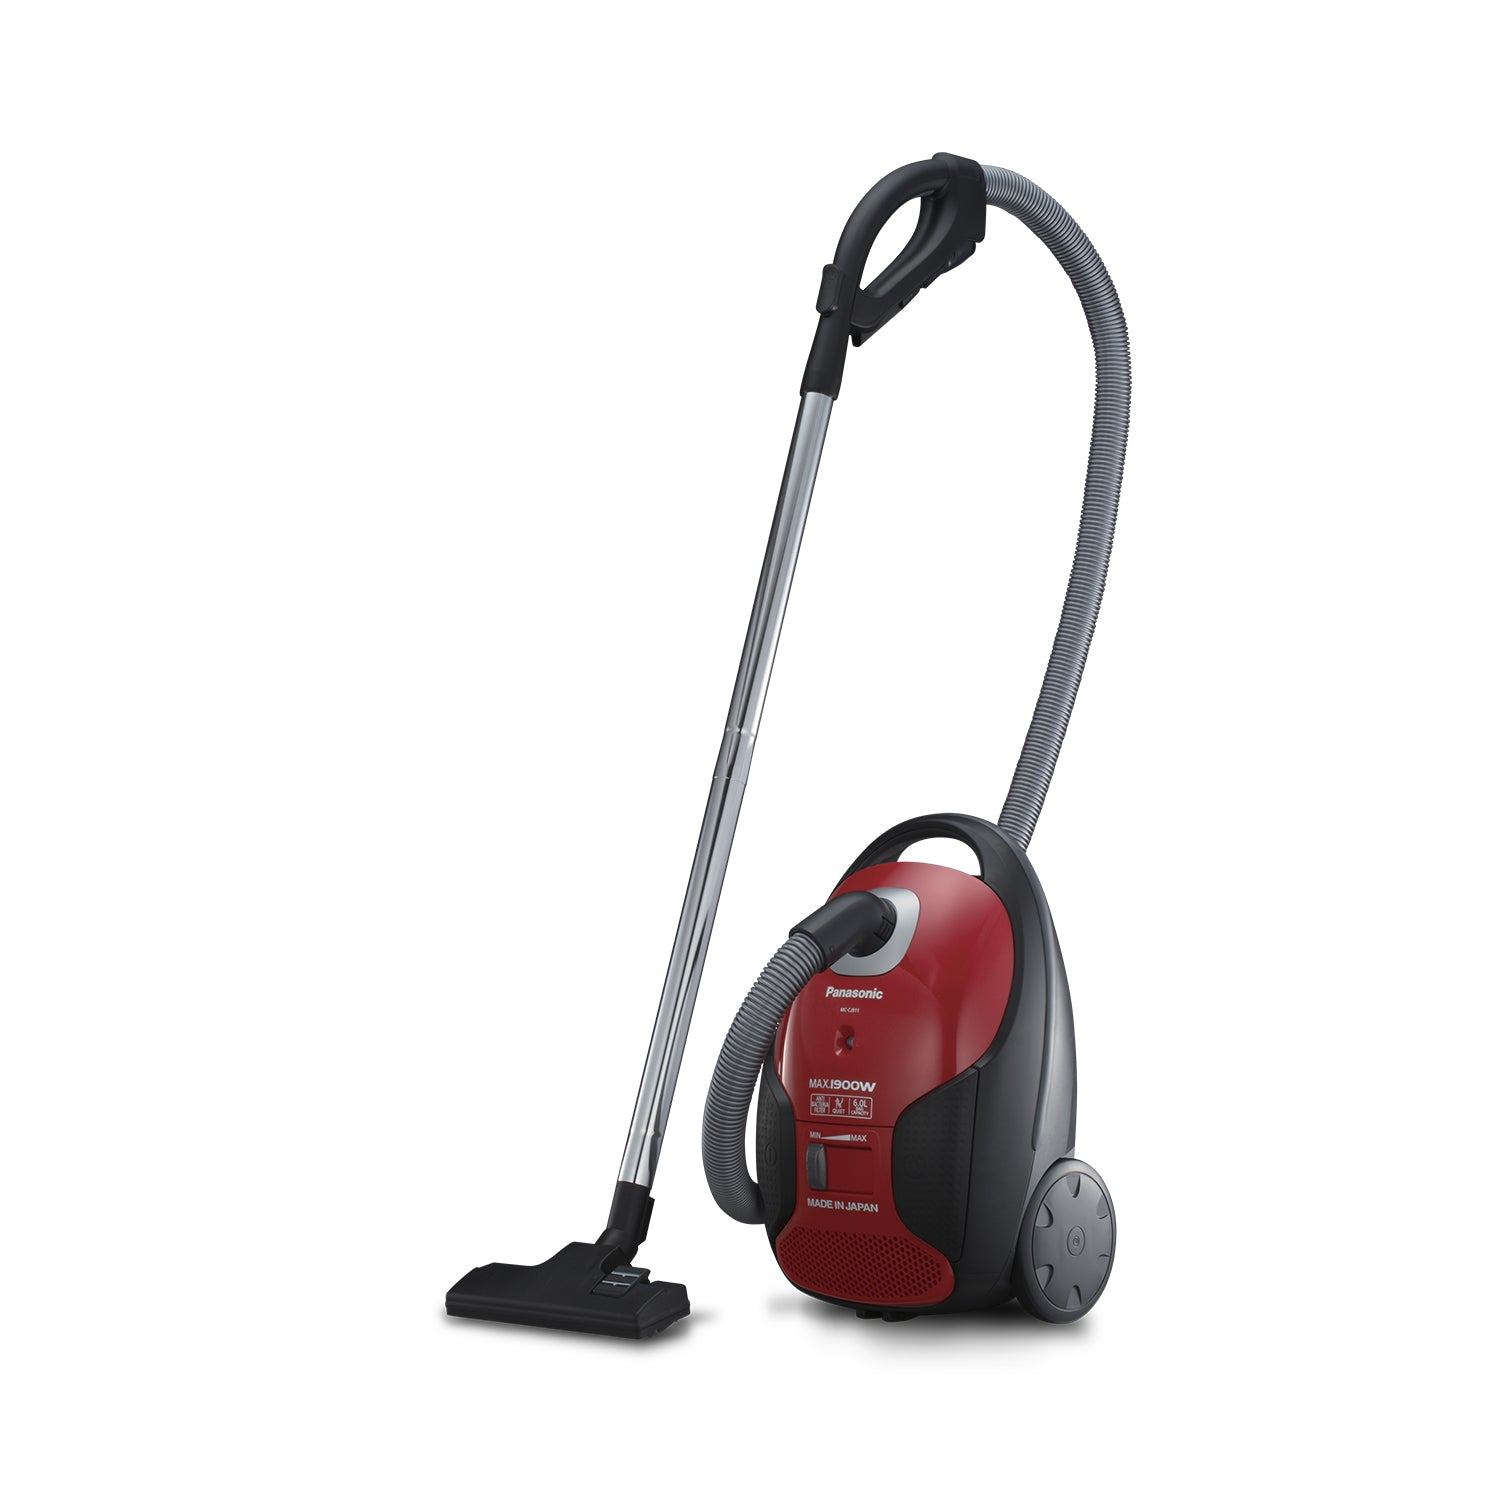 2100W Bagged Canister Vacuum Cleaner 6L